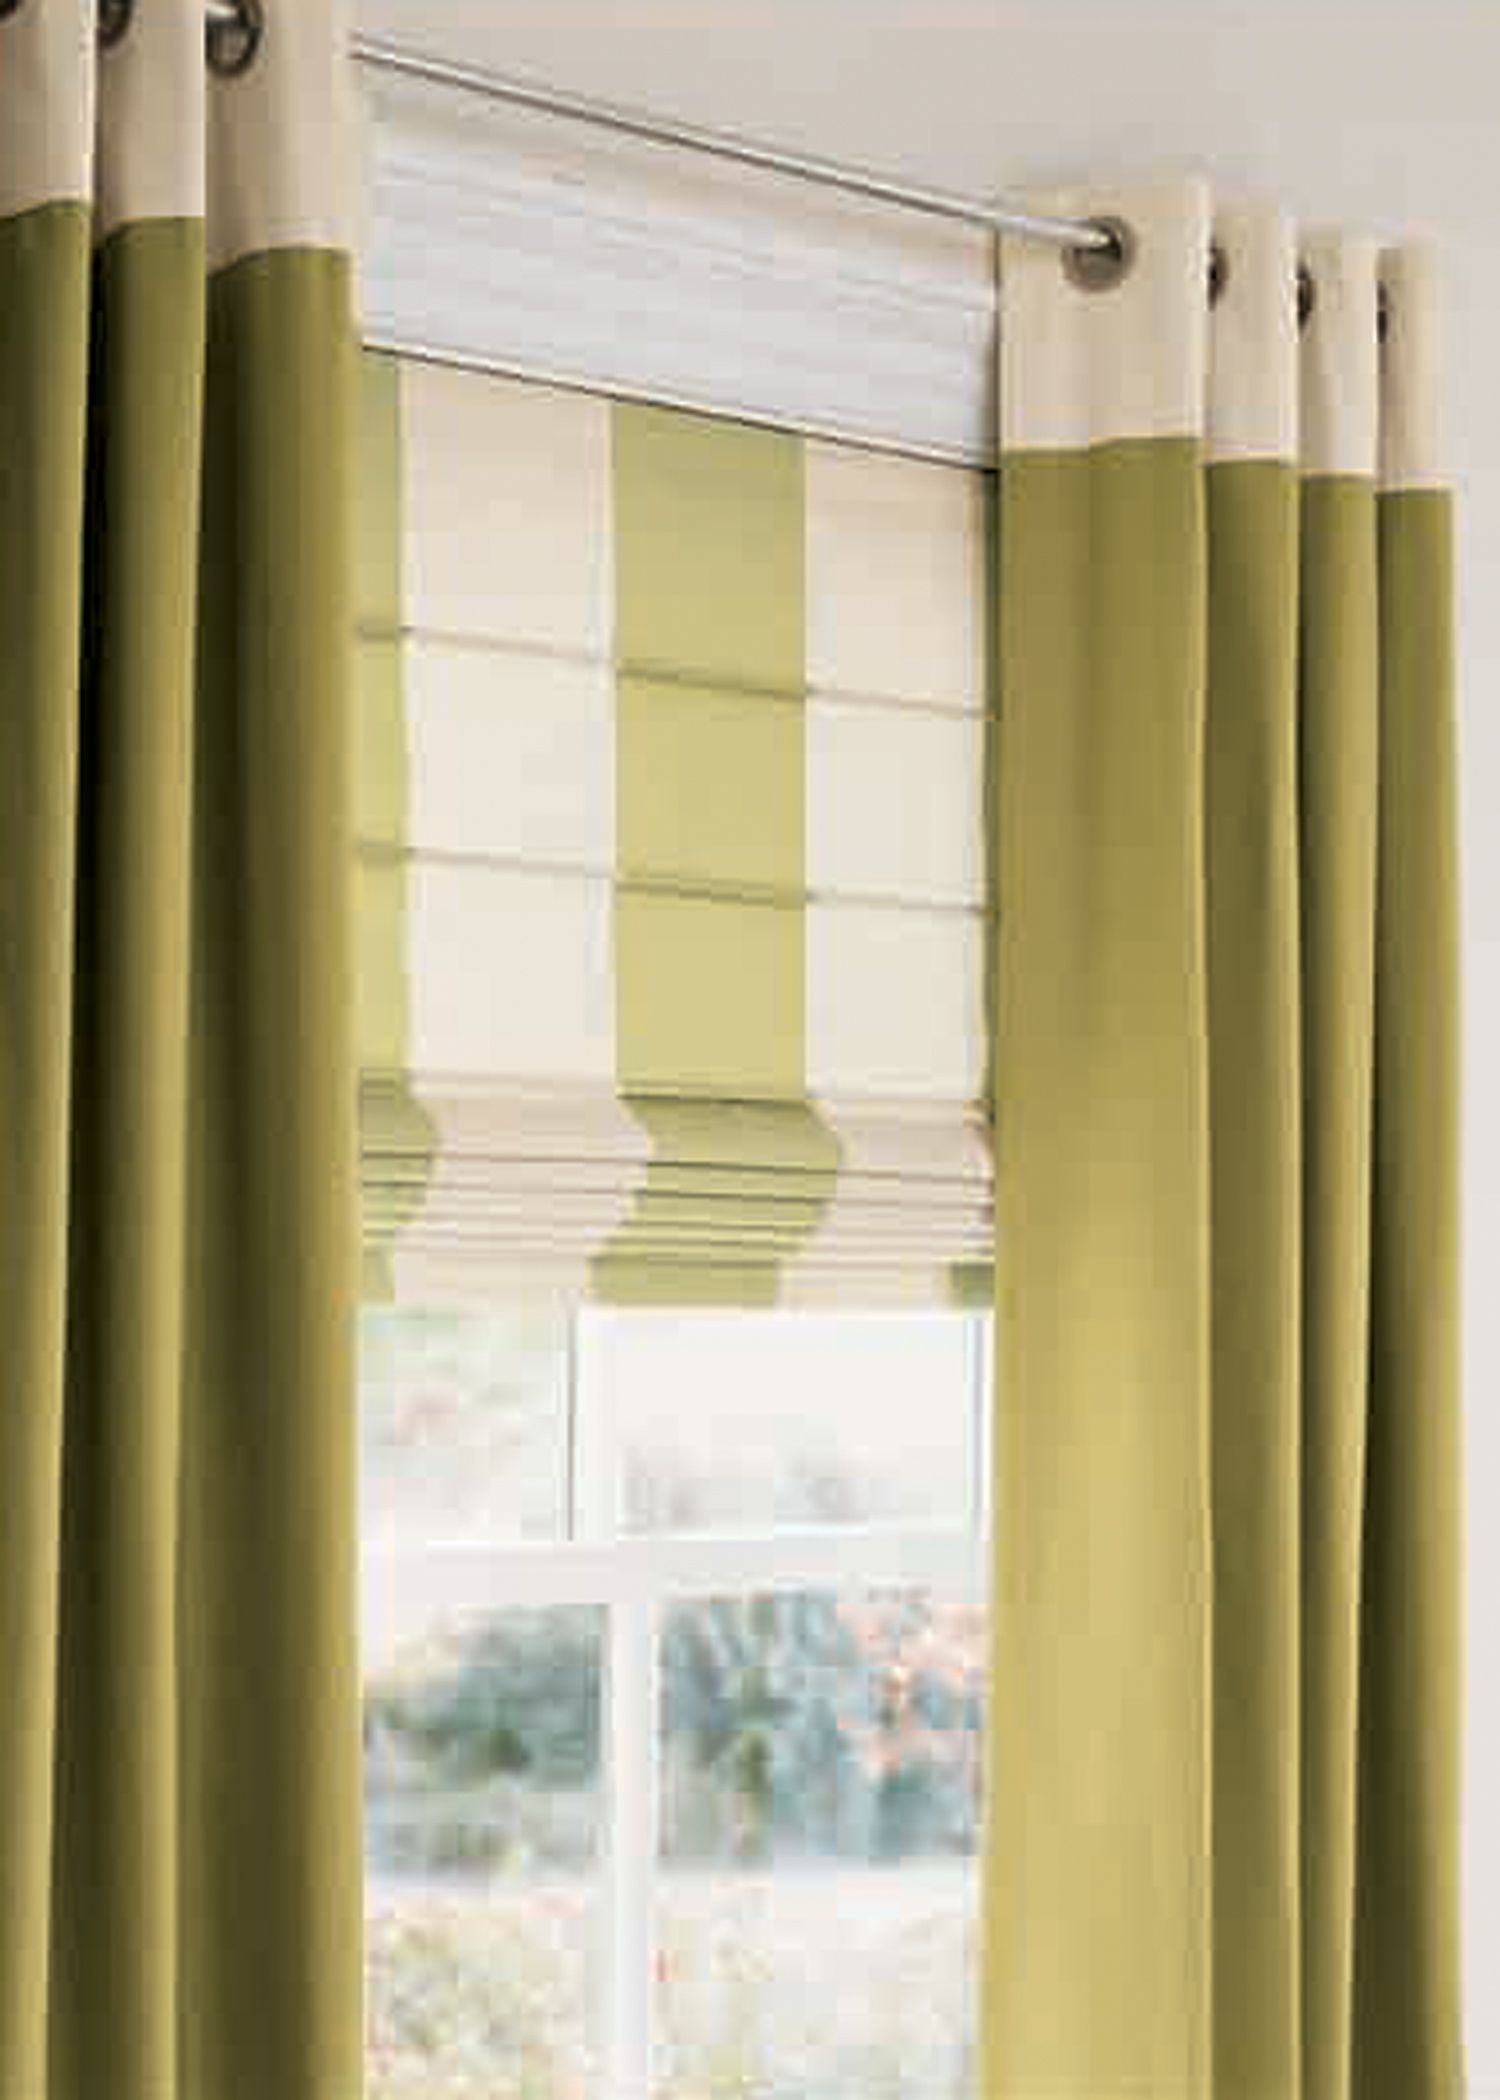 stmaryofthehills filtering discount light code bamboo blinds shade cellular select reviews